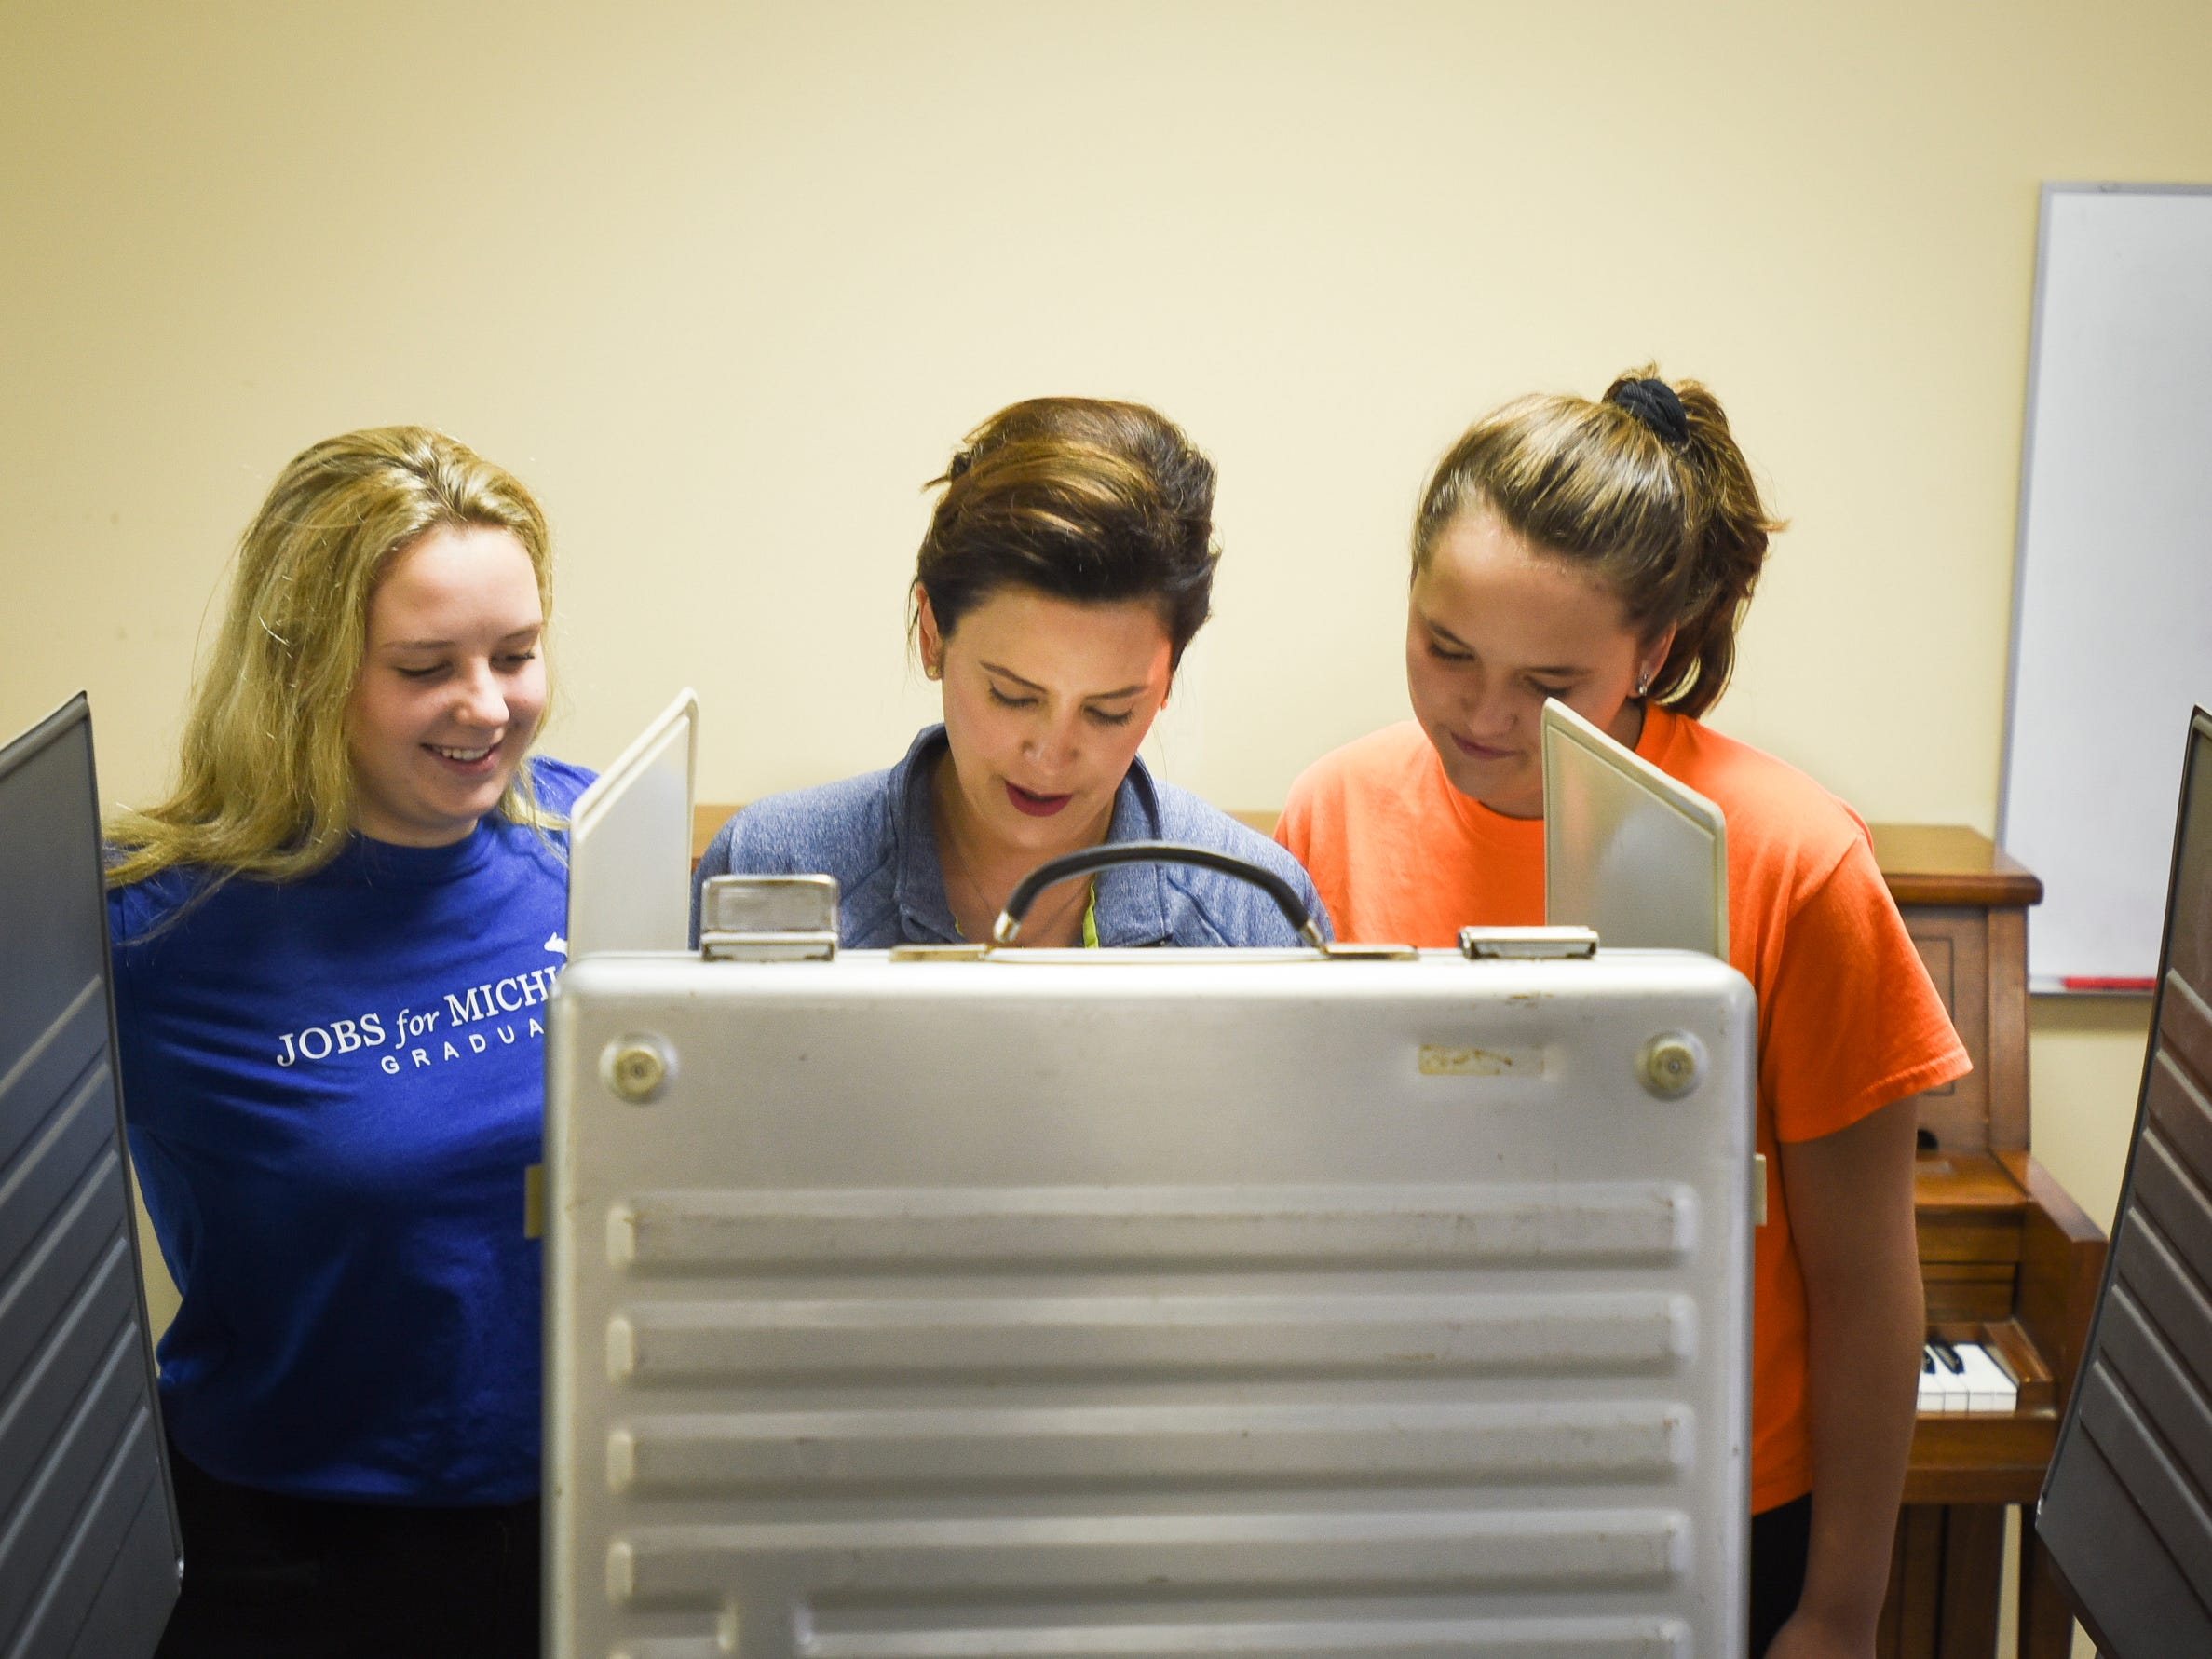 Flanked by daughters Sydney Shrewsbury, 14, left, and 11-year-old Sherry, Michigan Democratic gubernatorial candidate Gretchen Whitmer fills out her ballot Tuesday at St. Paul Lutheran church in East Lansing.